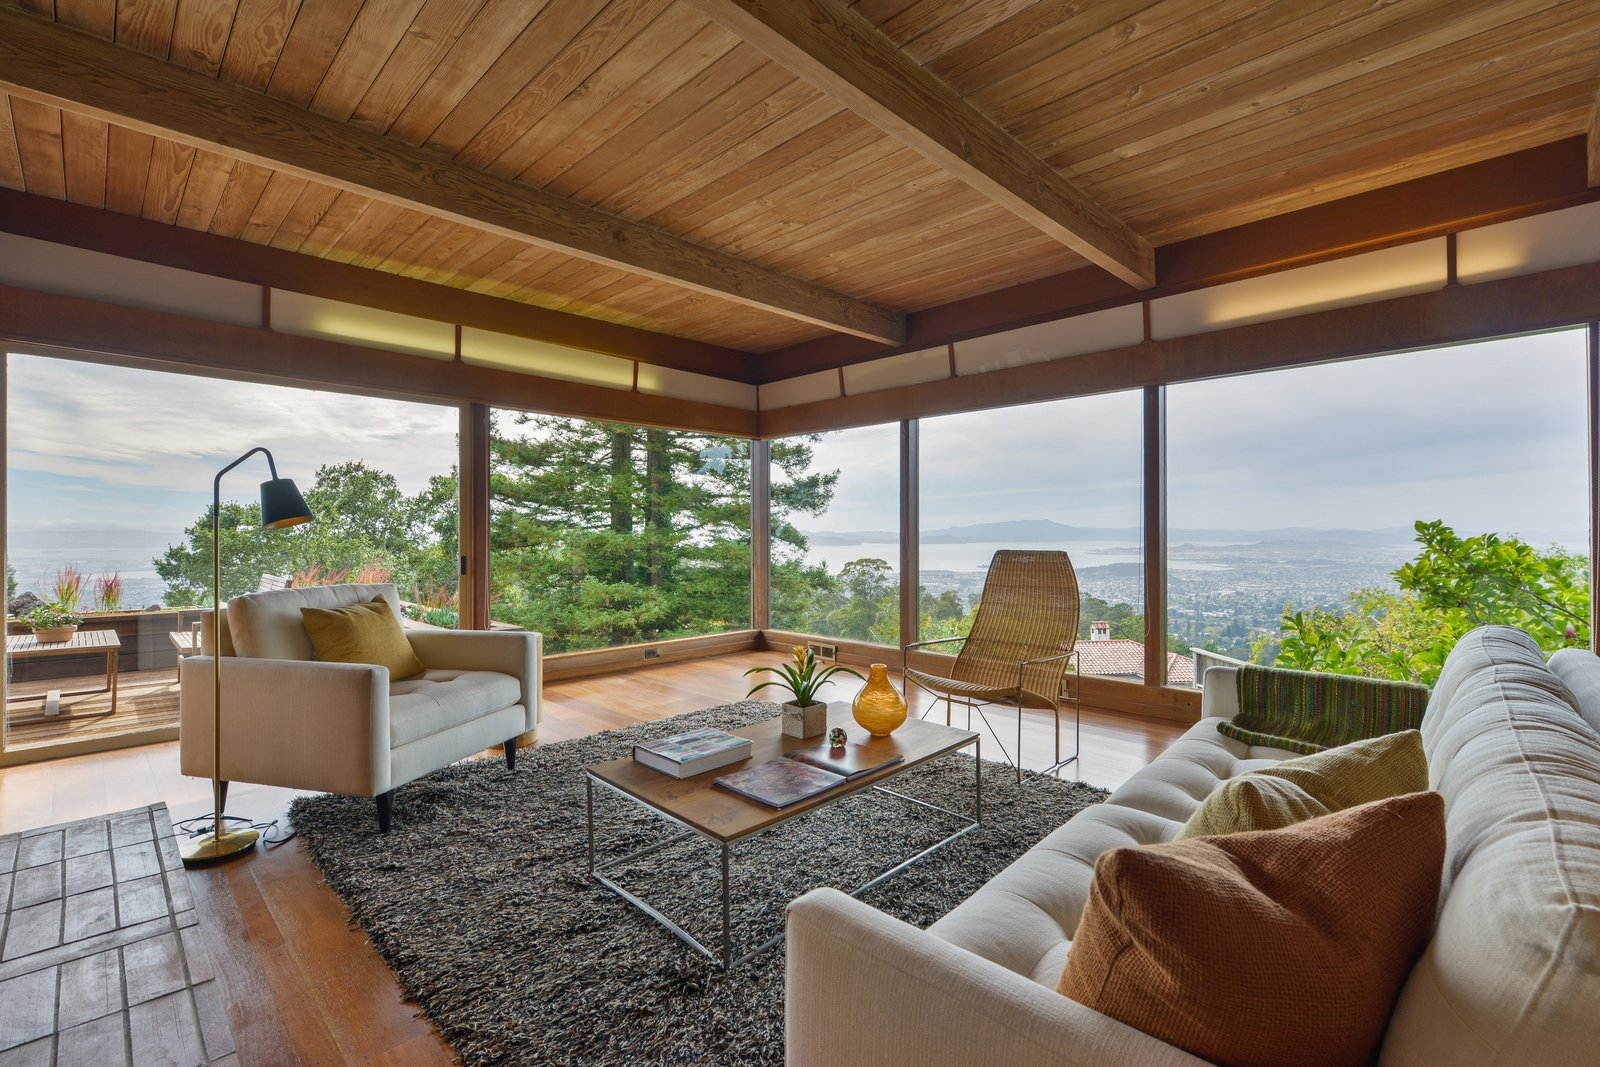 Articles about jaw dropping modern cabin nestled steep hillside british columbia on Dwell.com